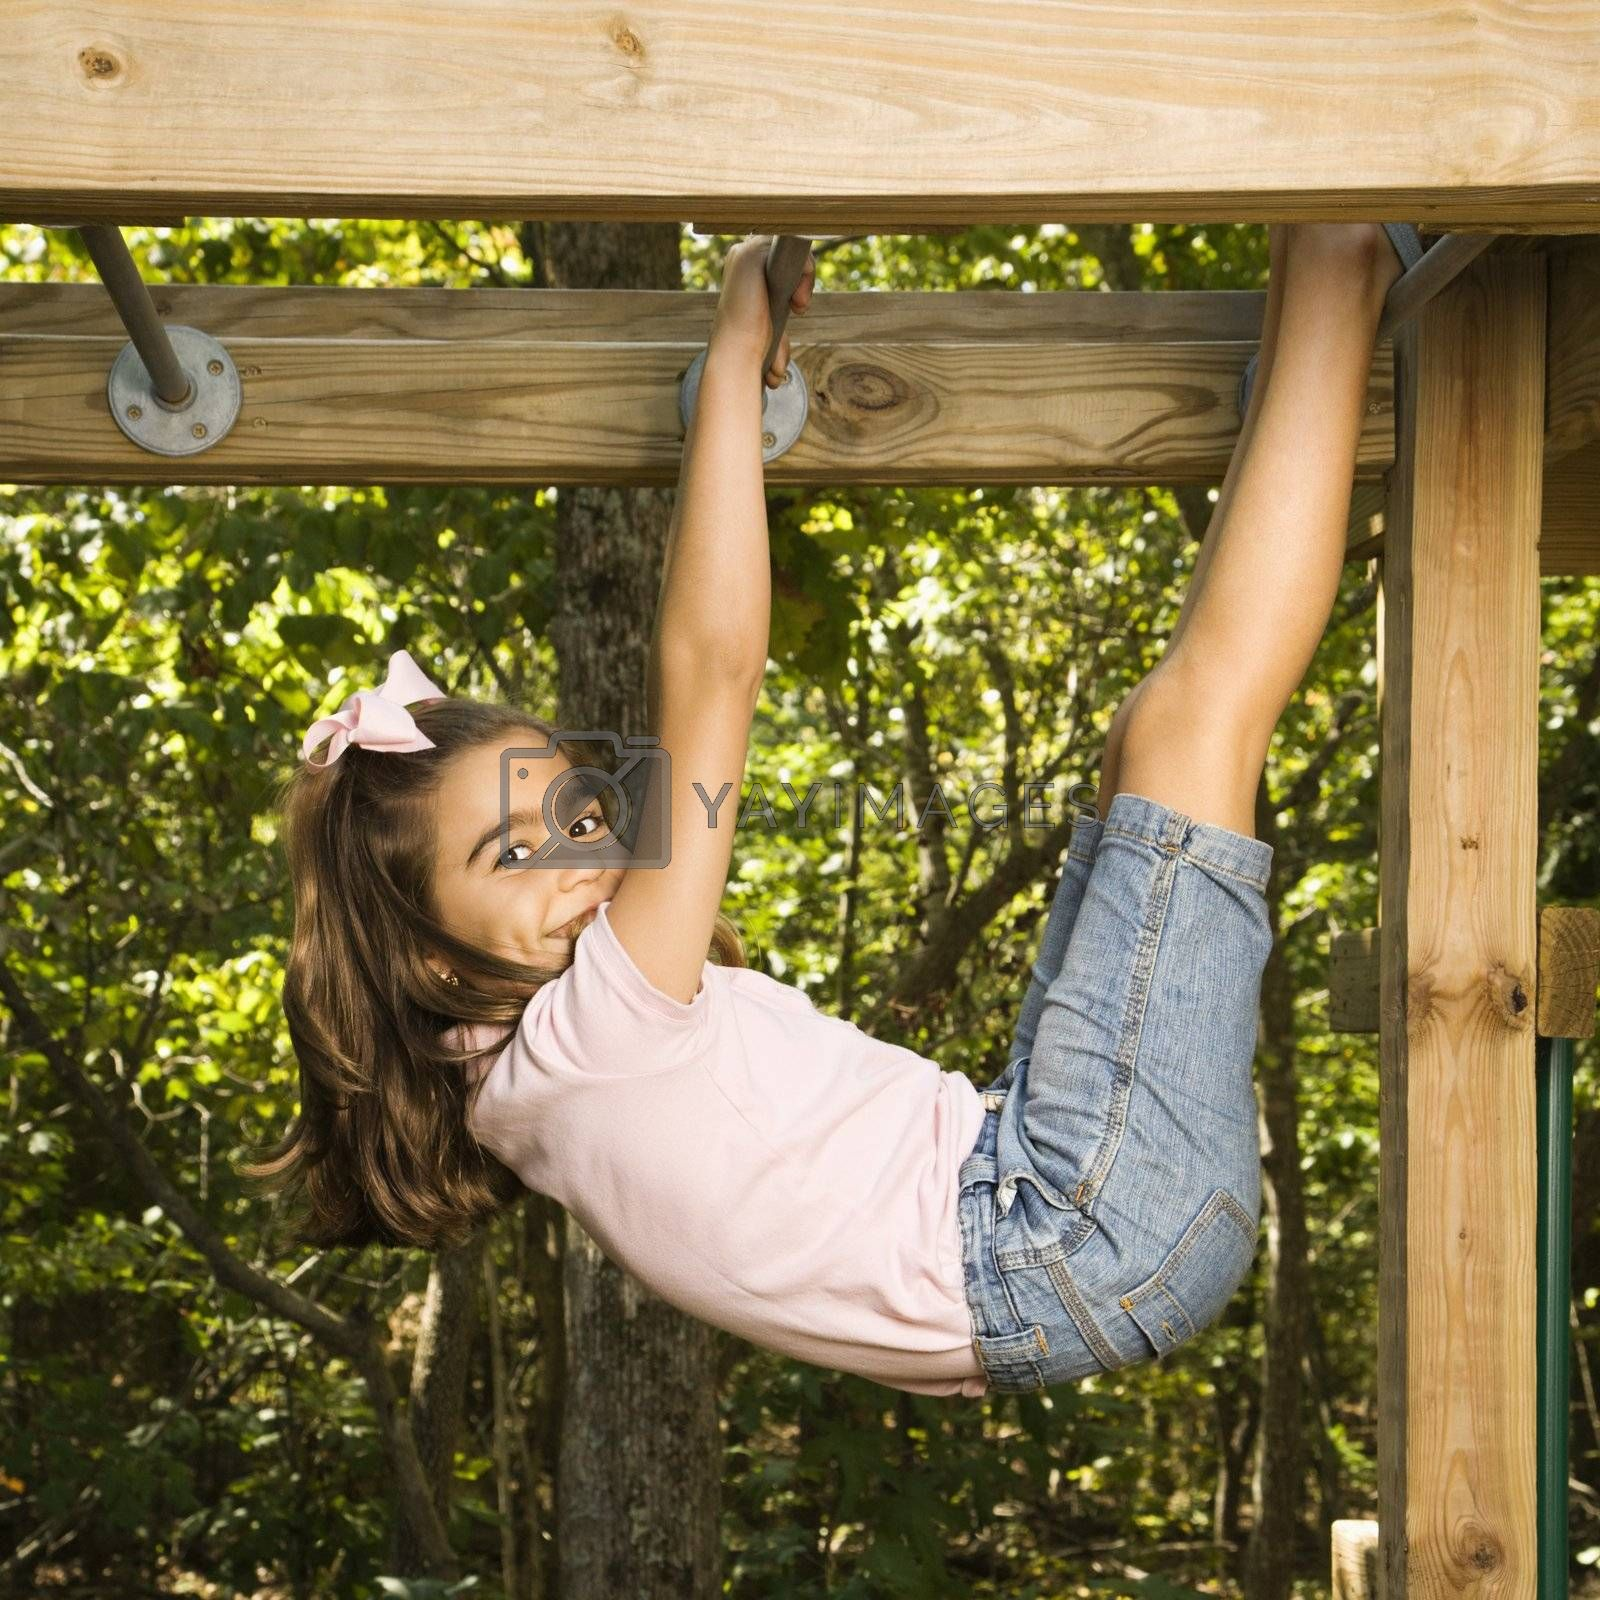 Side view of Hispanic girl hanging by arms and legs from monkey bars smiling at viewer.